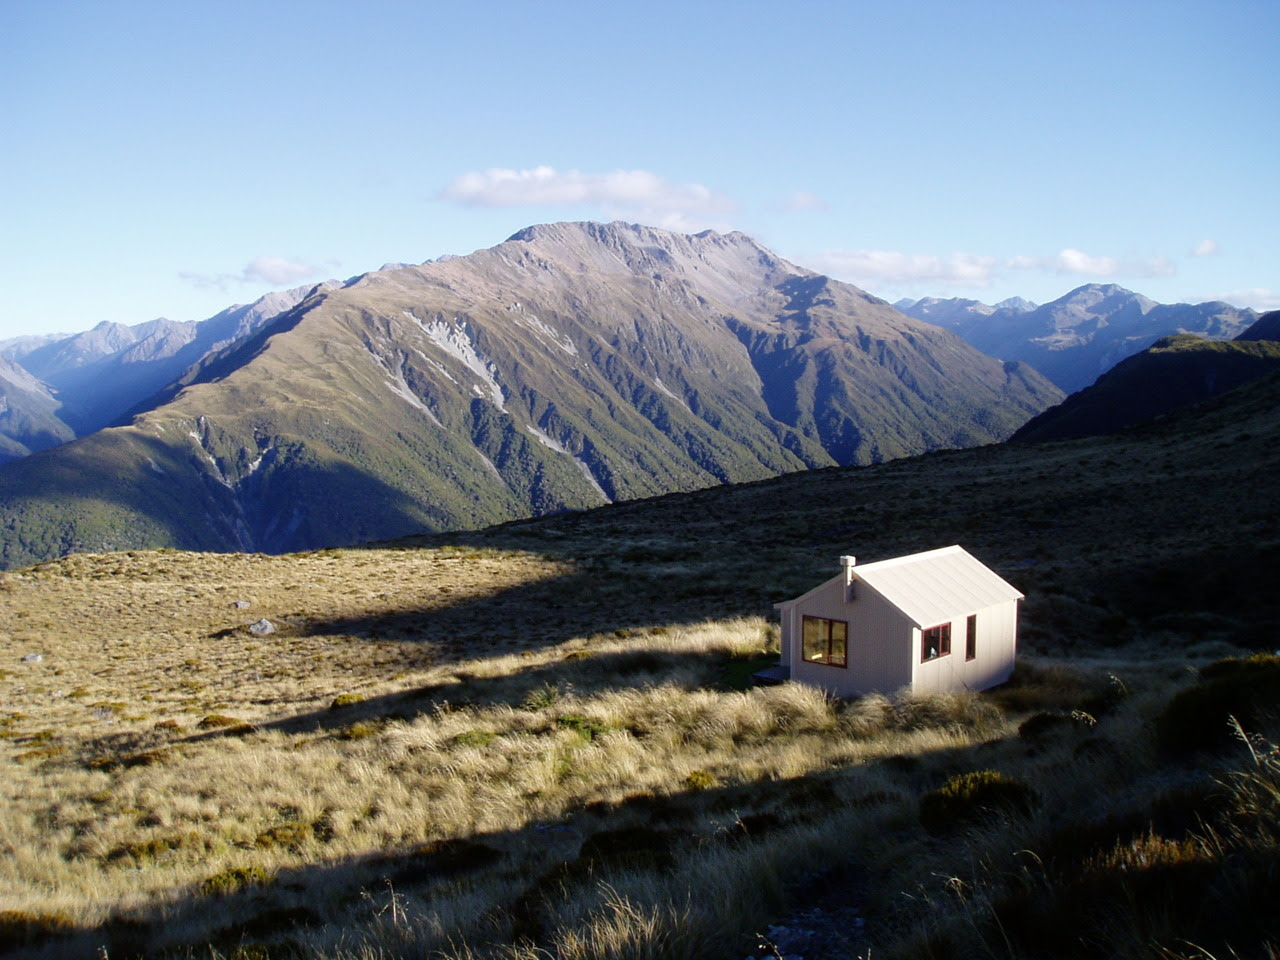 Hiker's hut near Arthur's Pass, New Zealand. 